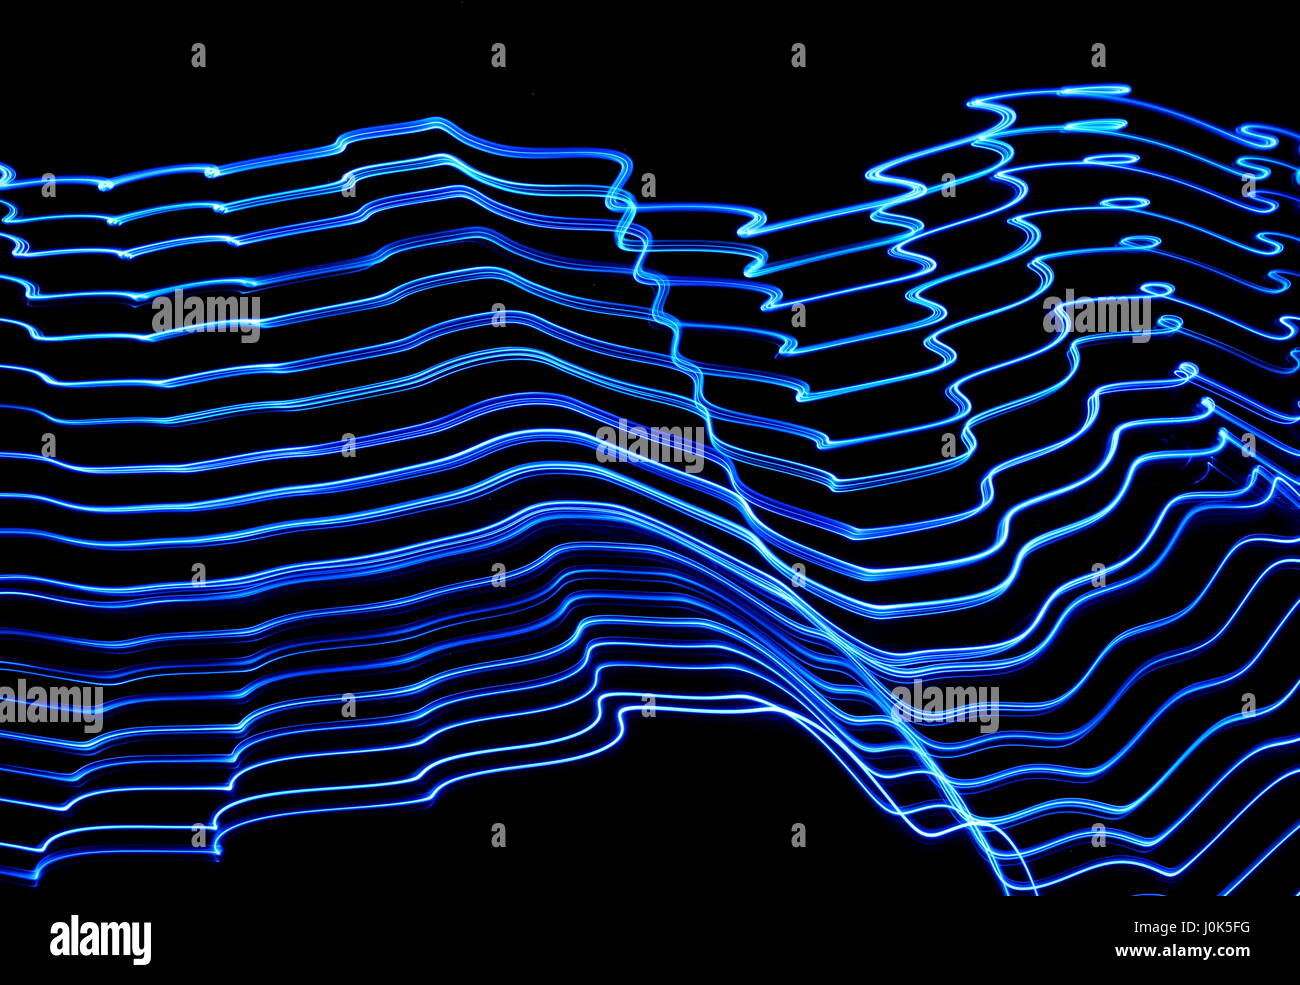 Long exposure photograph of neon electric blue colour in an abstract pattern against a black background. Light painting - Stock Image